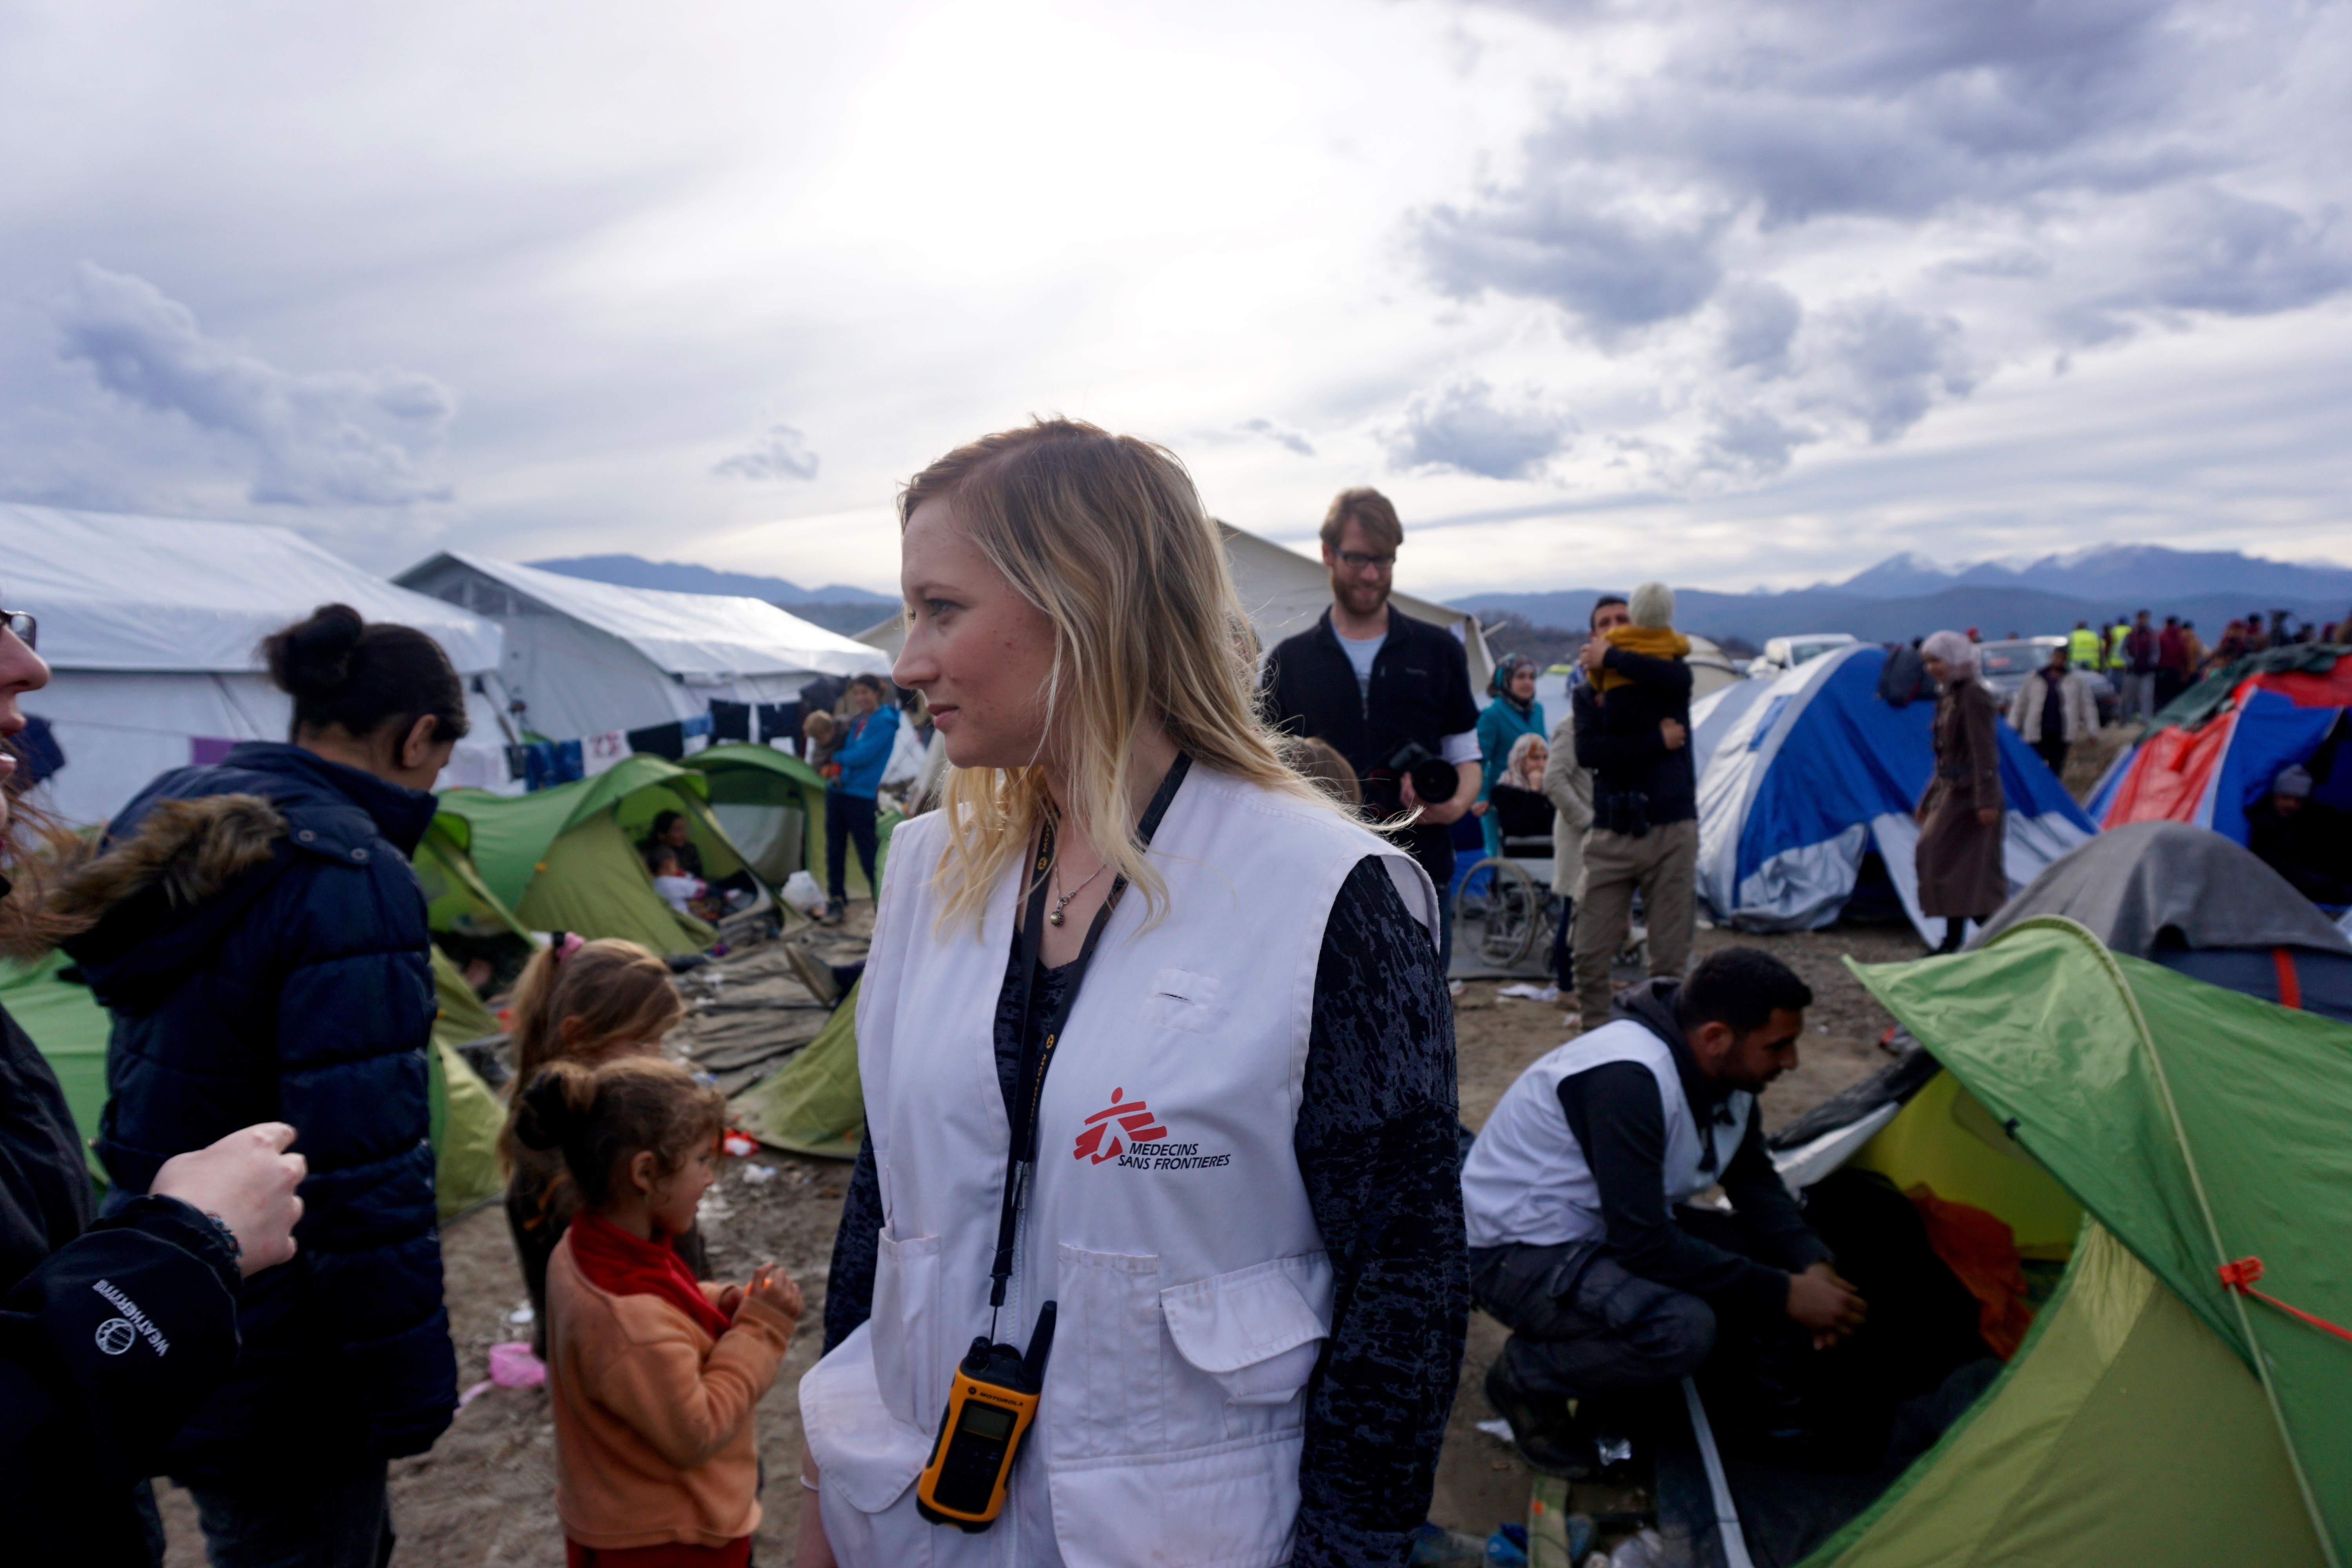 MSF Spokesman Gemma Gillie says the French charity can''t continue without more international NGOs helping with more resources. She says European governments bear responsibility but are not doing enough. (J. Dettmer)